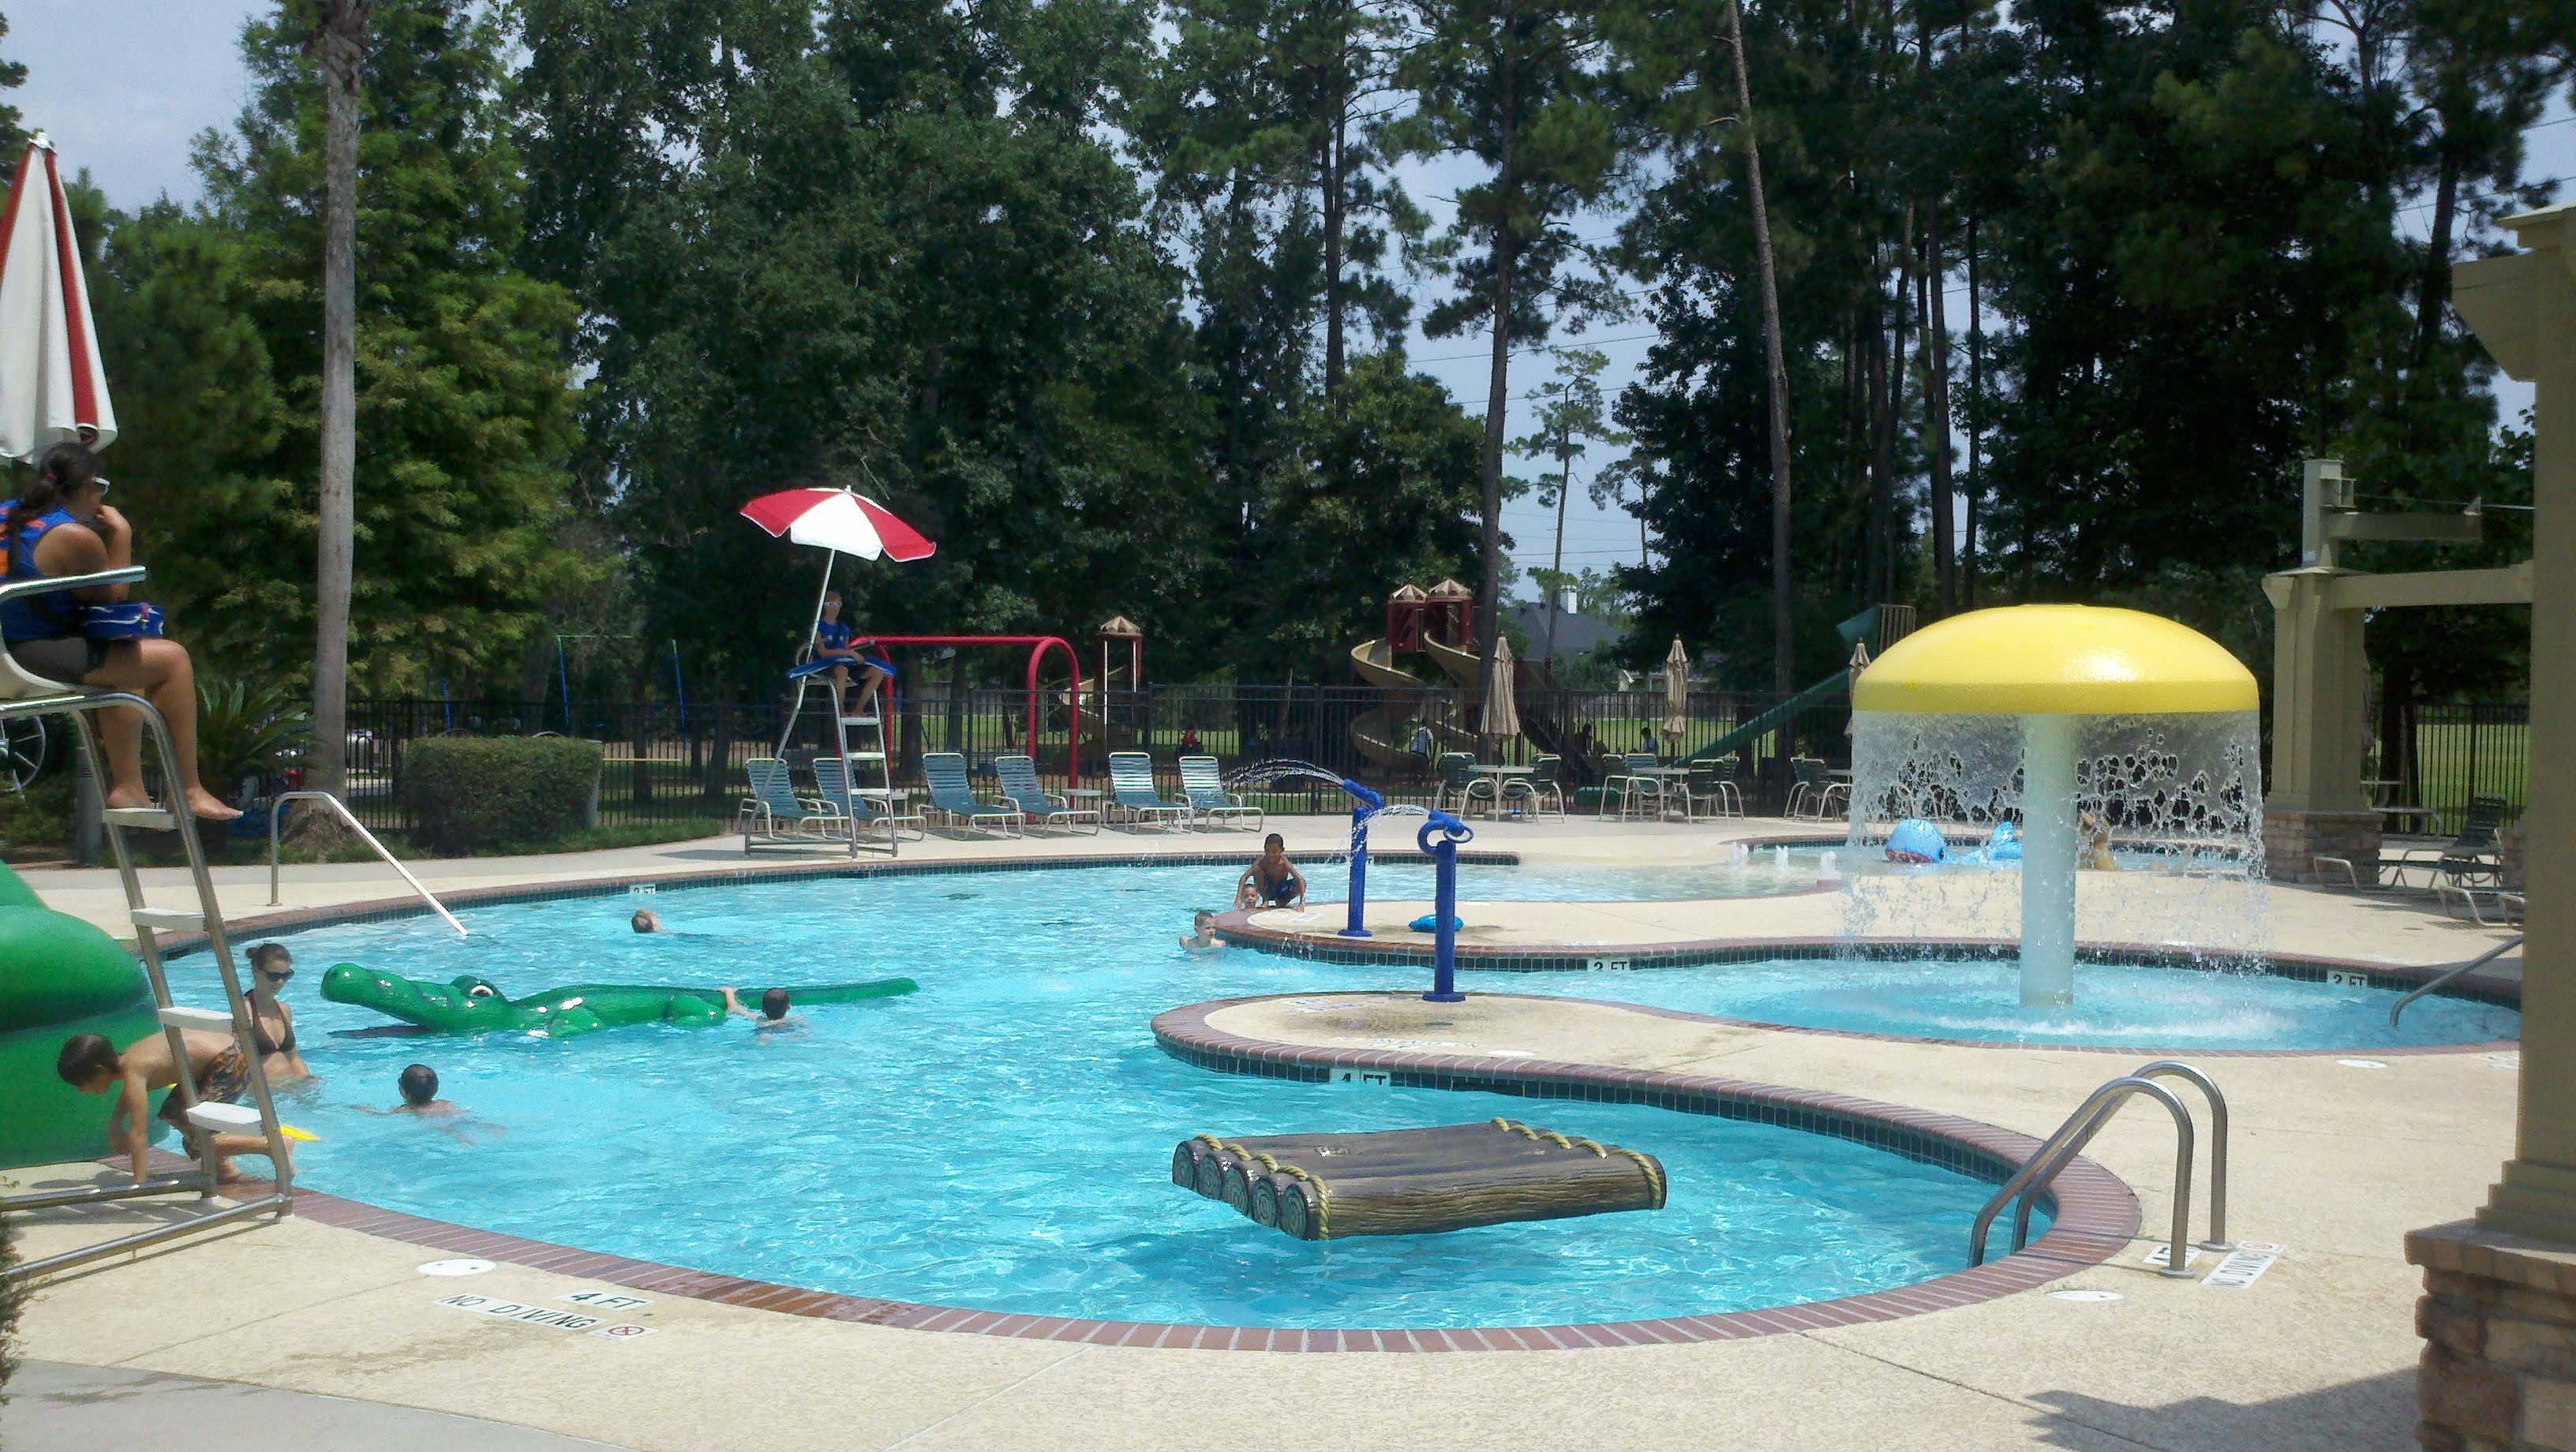 Houston community pool management katy pool services for Pool service